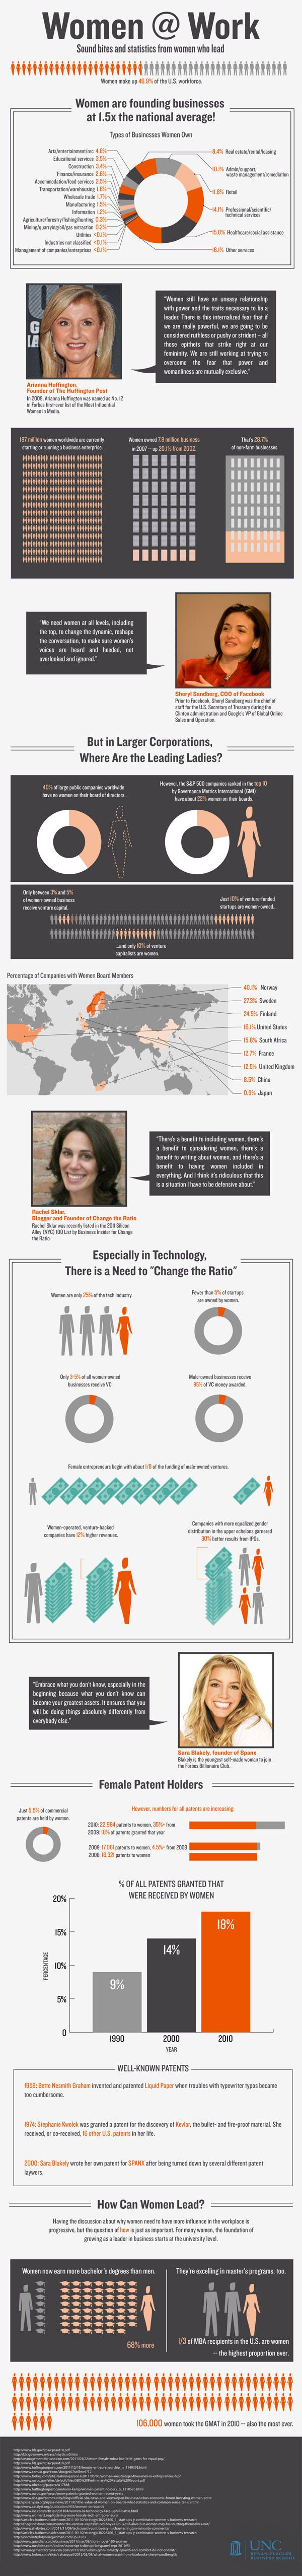 Women at work: The trends are slowly changing #women #career #infographic